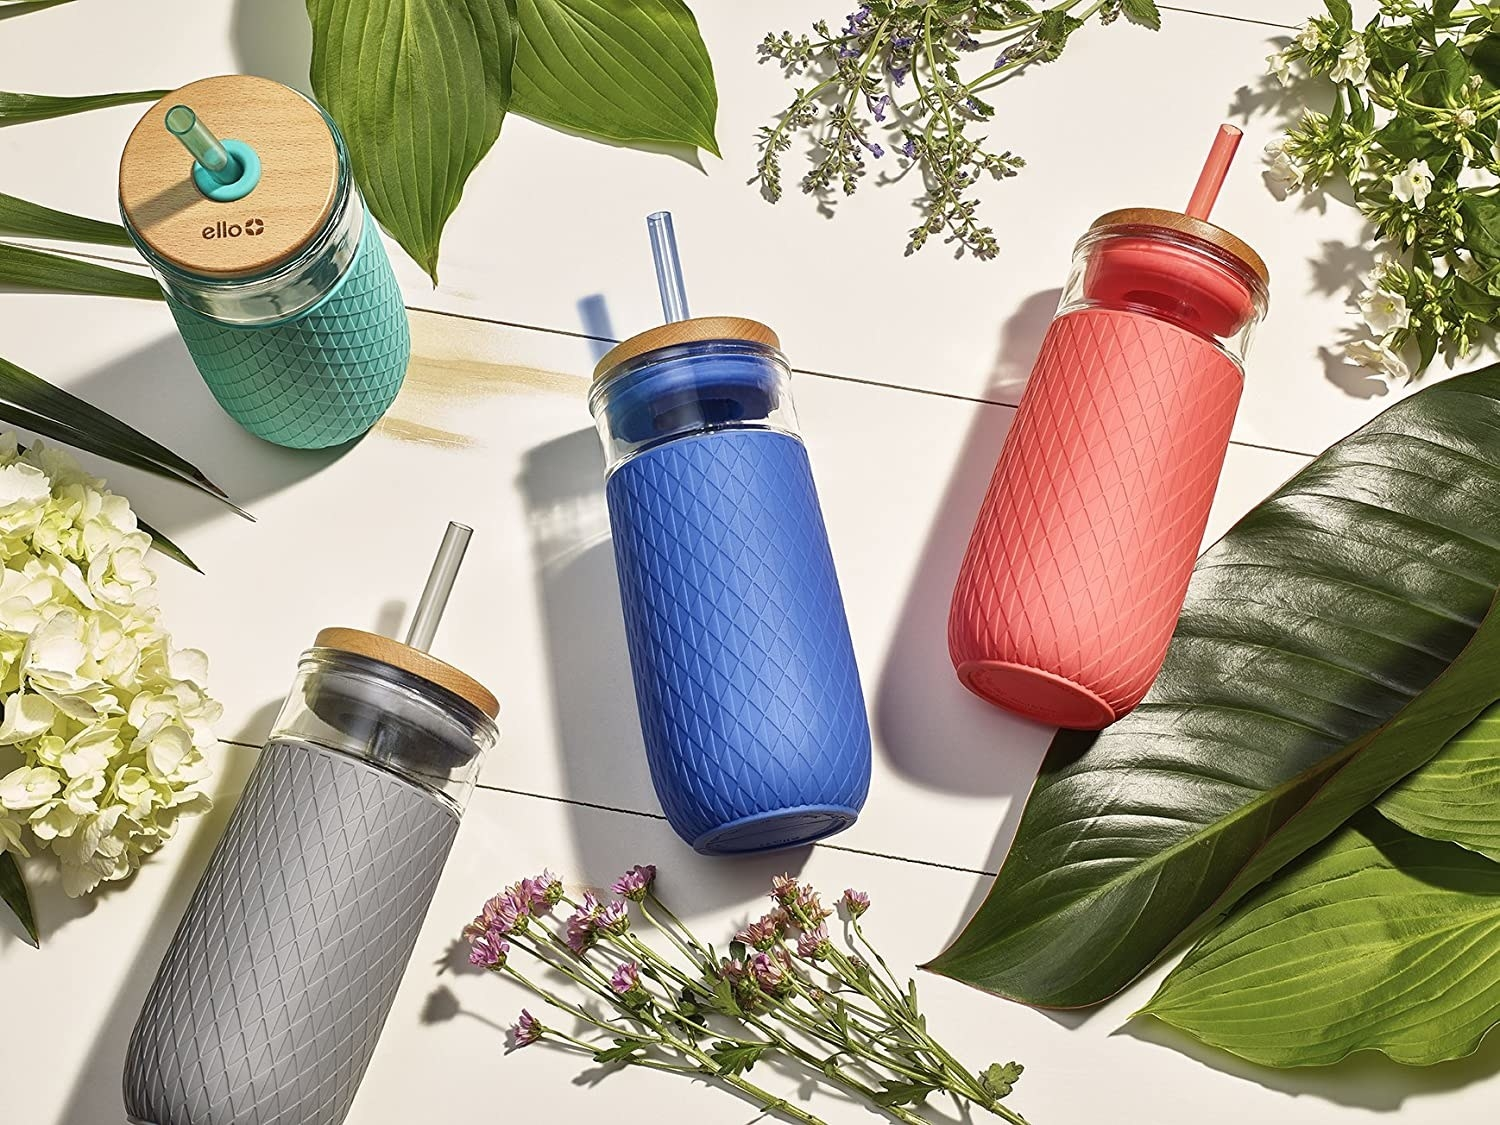 The glass tumblers neatly arranged on a desk with leafy plants